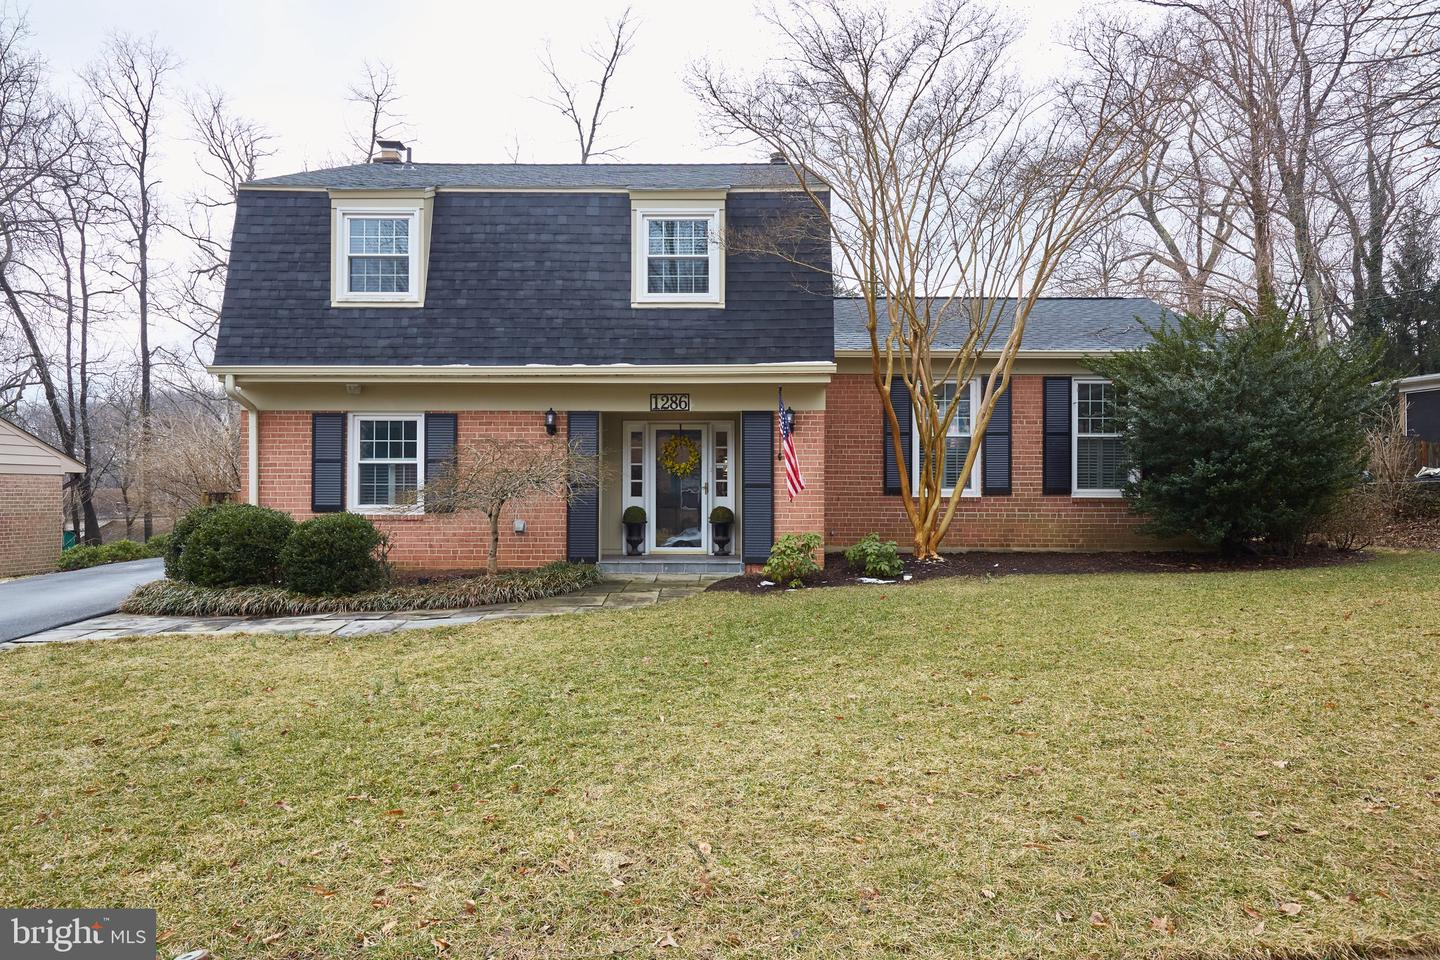 1286 BARTONSHIRE WAY, POTOMAC, Maryland